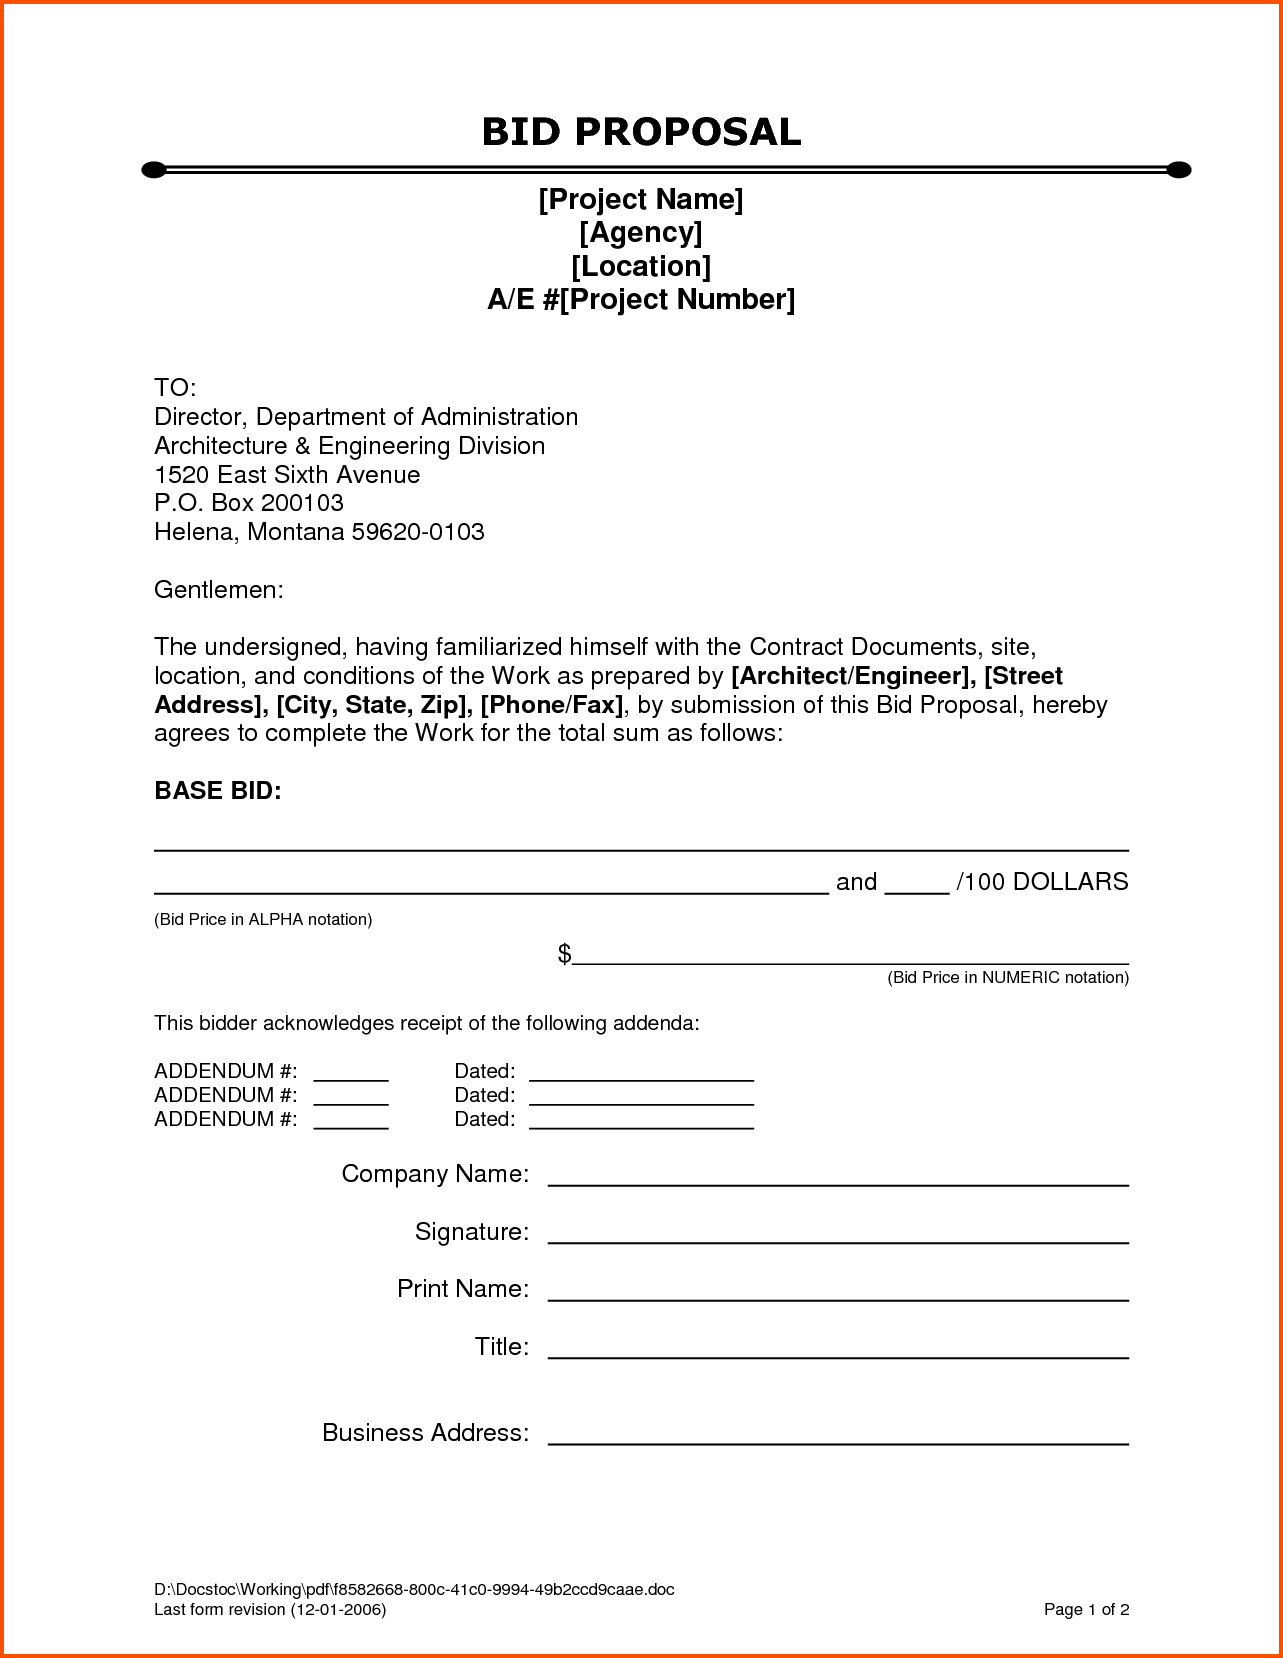 Bid Proposal Cover Letter